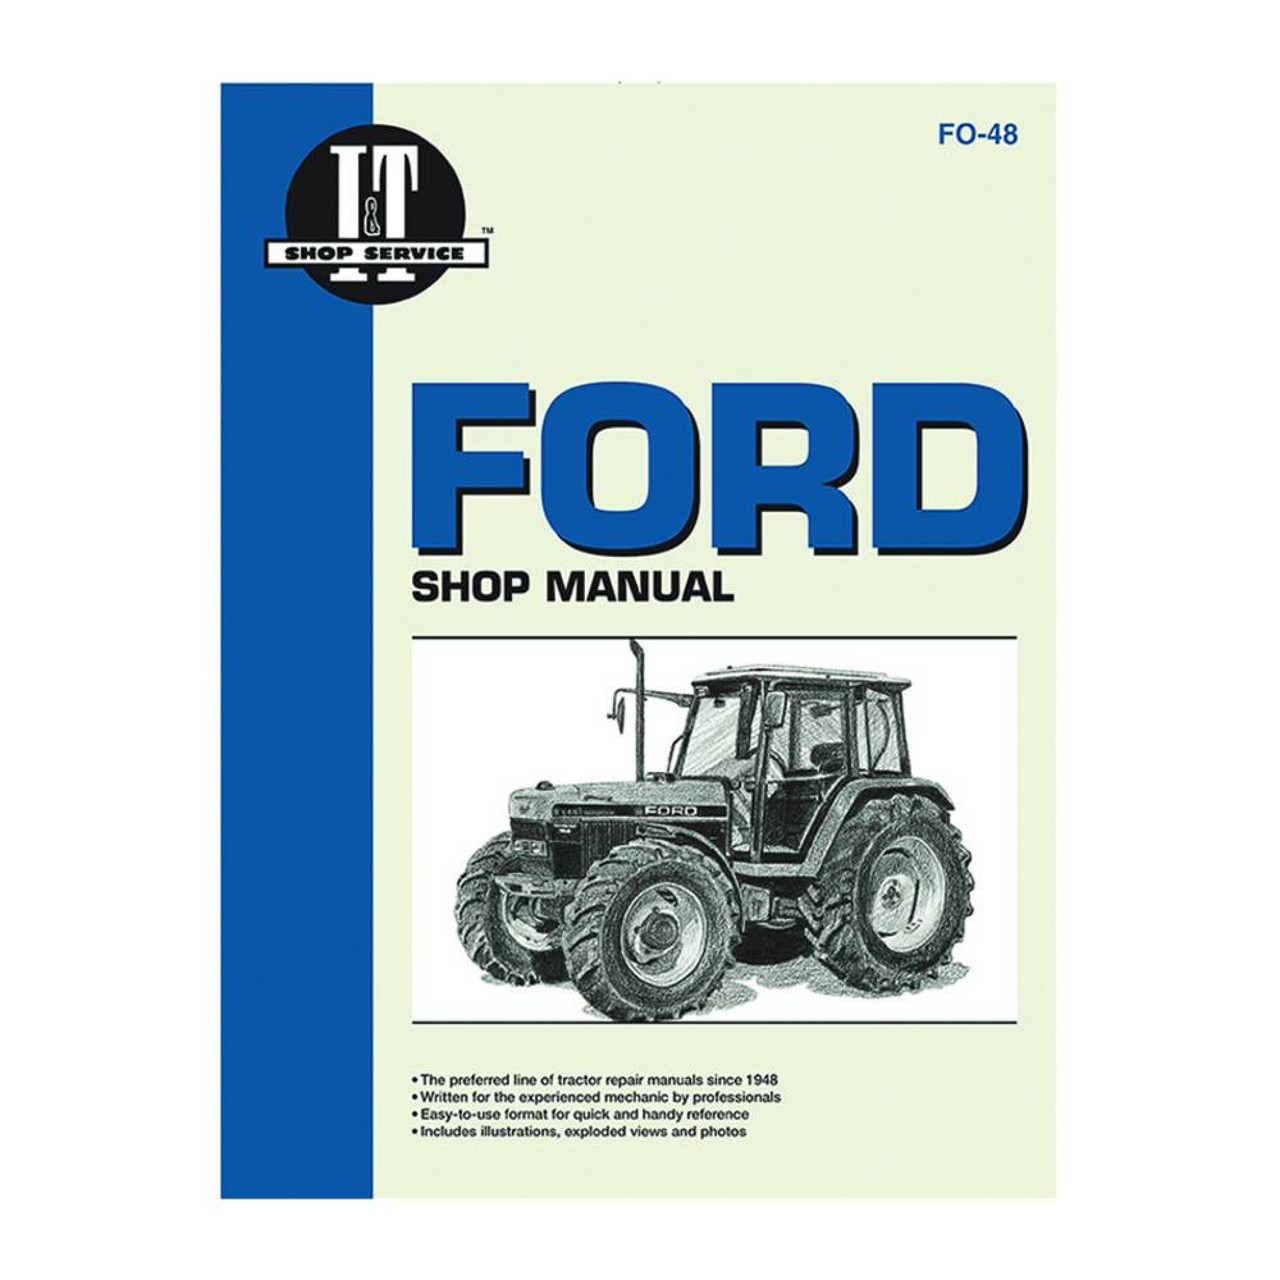 ford tractor wiring harness 7740 wiring diagram files ford tractor wiring harness 7740 [ 1280 x 1280 Pixel ]